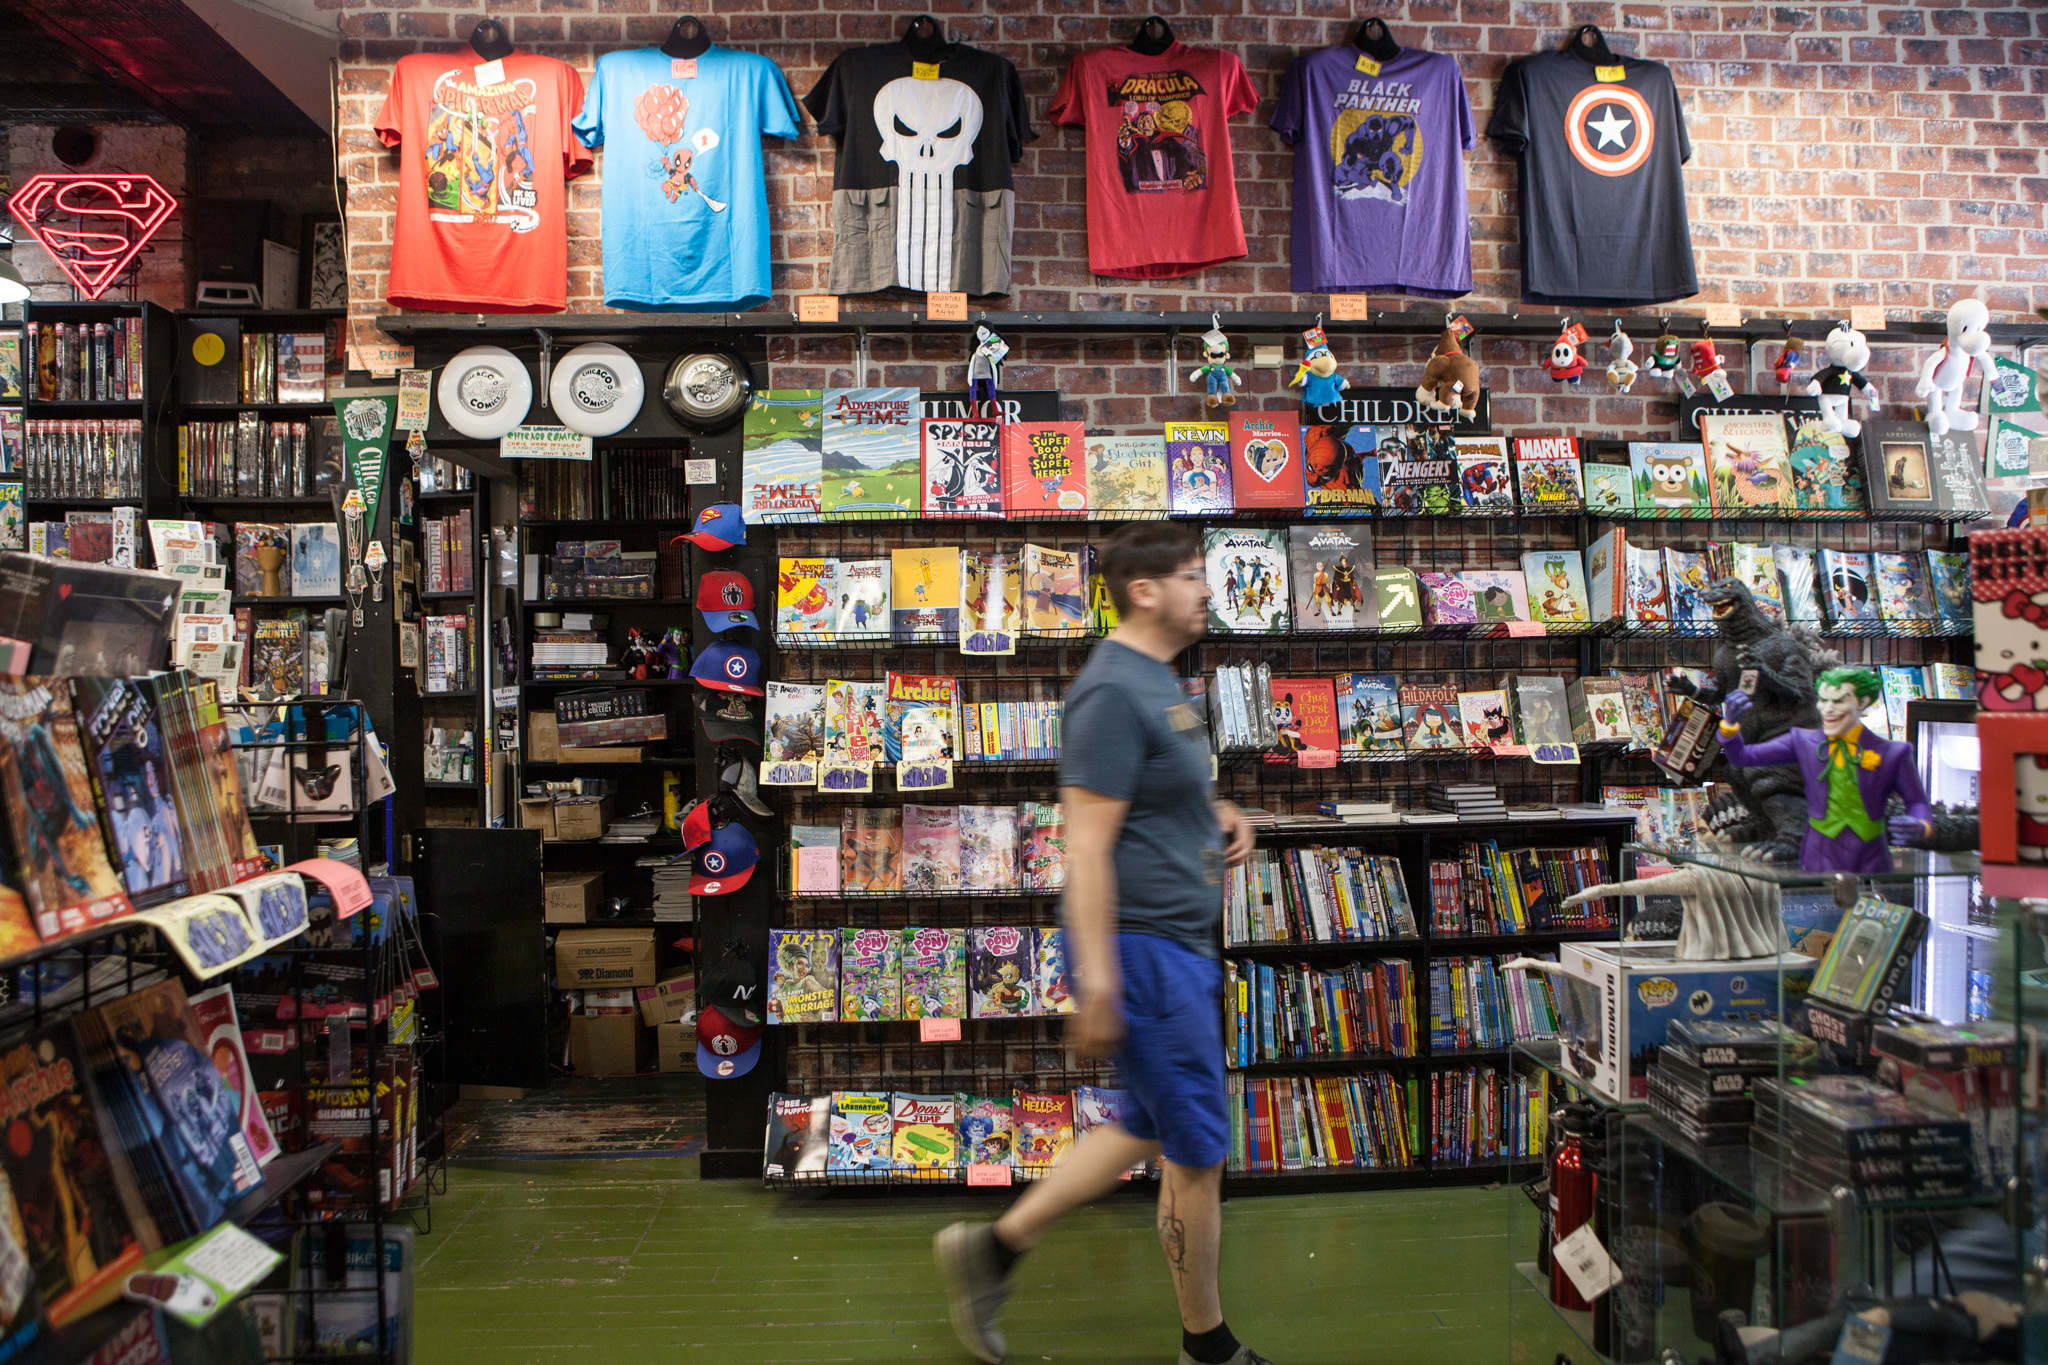 Man Cave Store Near Me : Chicago s best geek stuff including arcades and comic shops